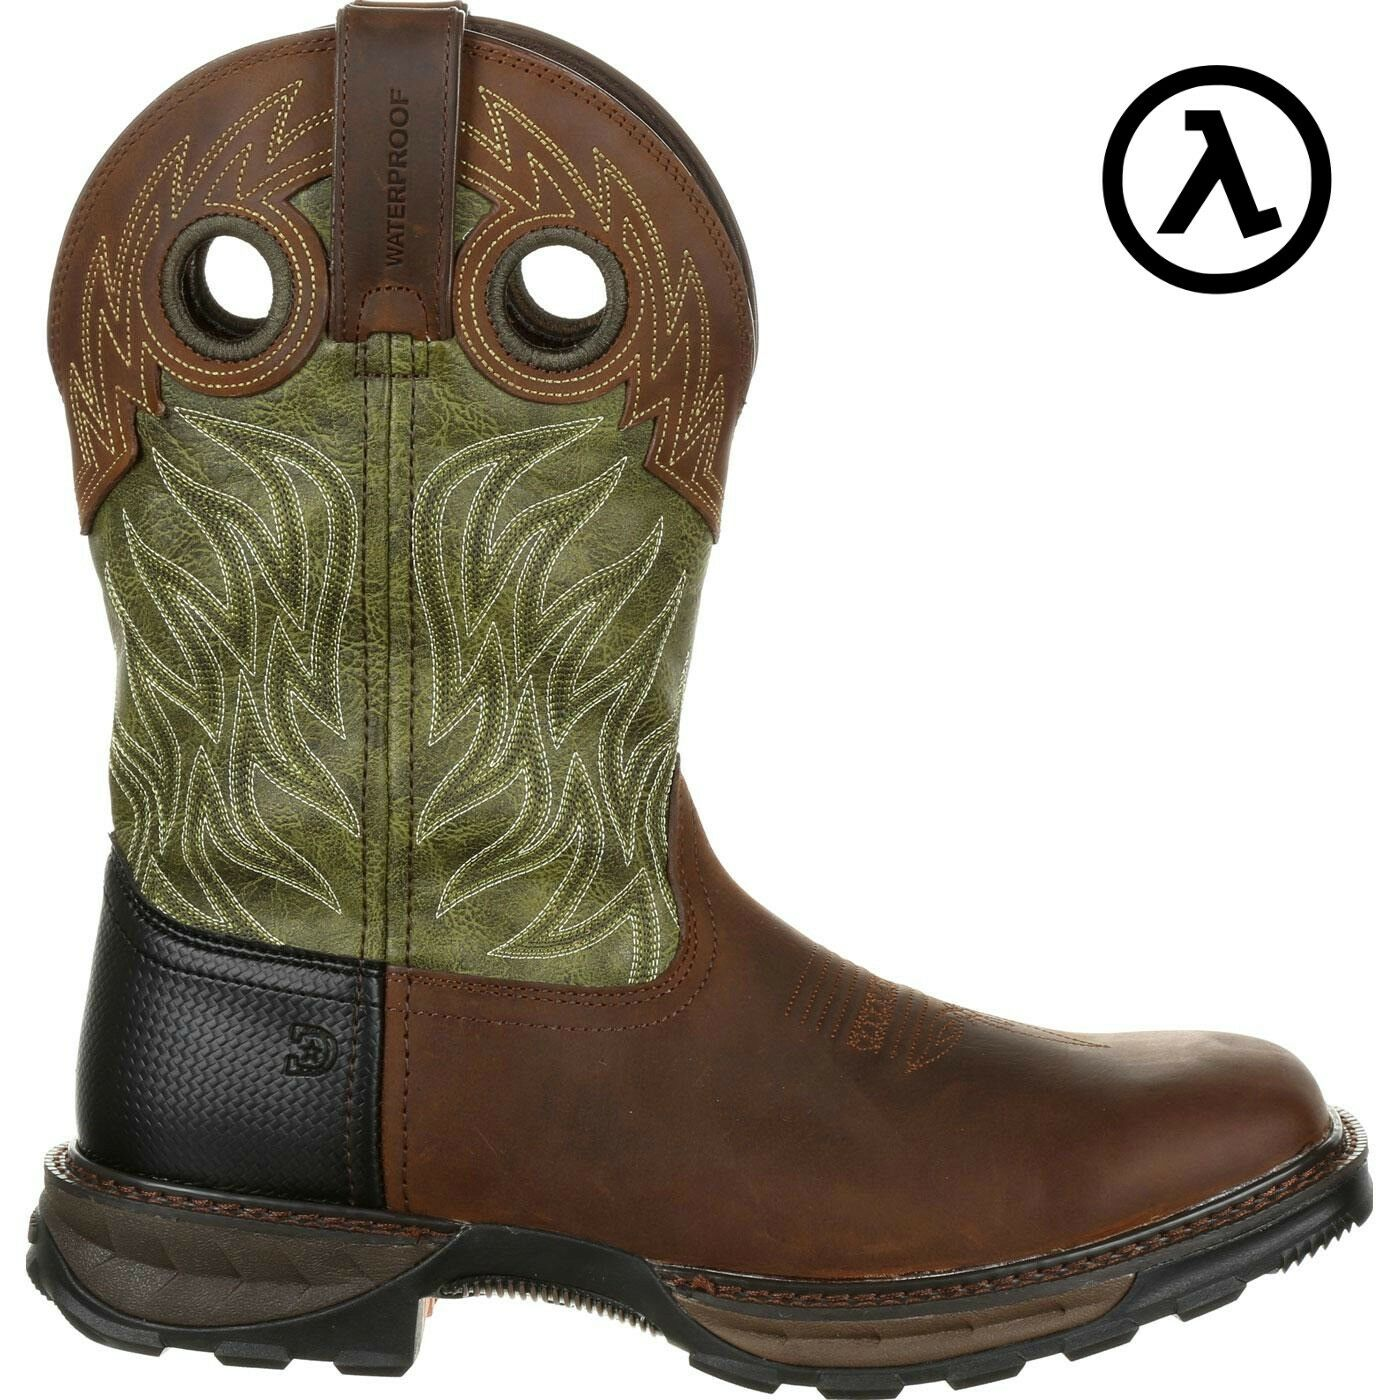 DURANGO MAVERICK XP WATERPROOF PULL-ON WESTERN WORK WORK WORK BOOTS DDB0177 * ALL SIZES c1d2d7